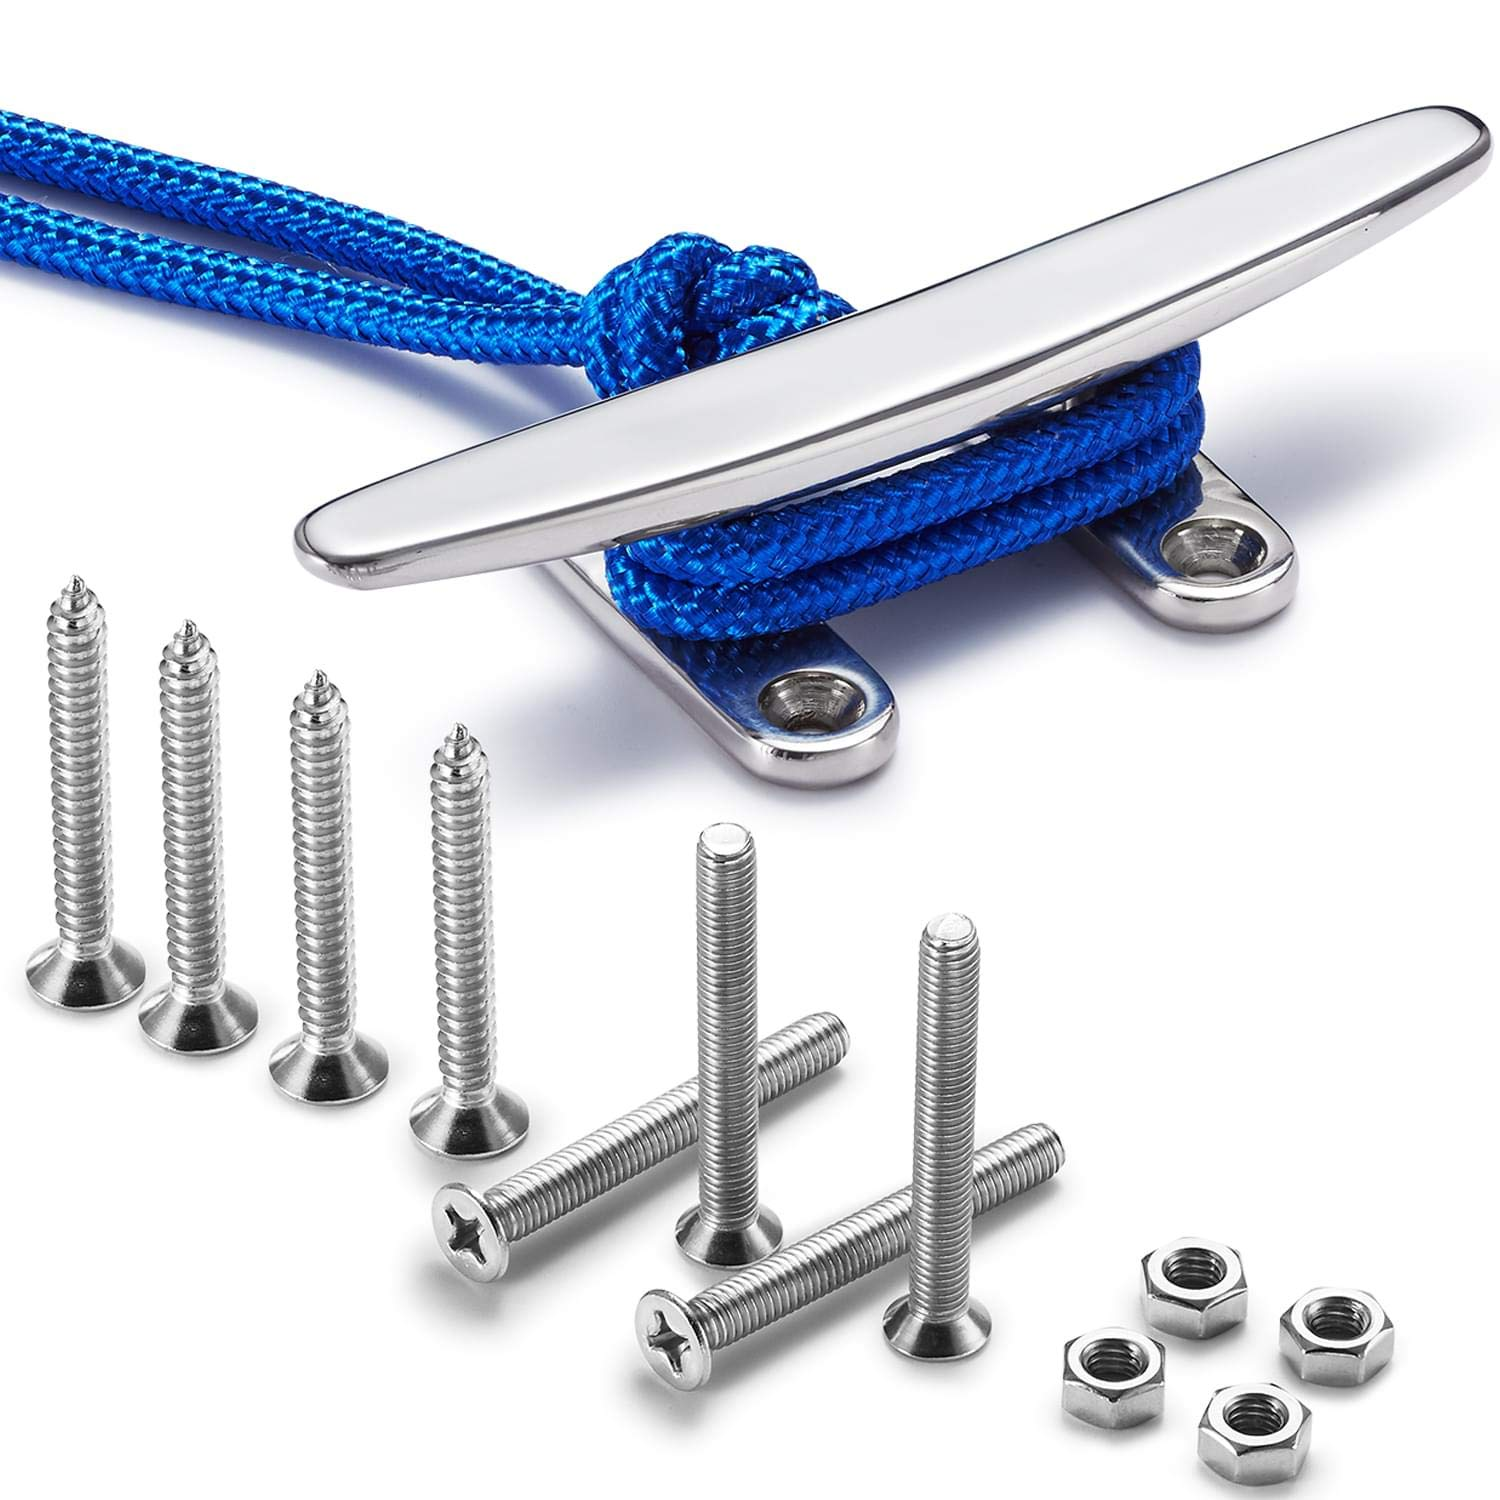 ZOMCHAIN Stainless Mooring Accessories Installation